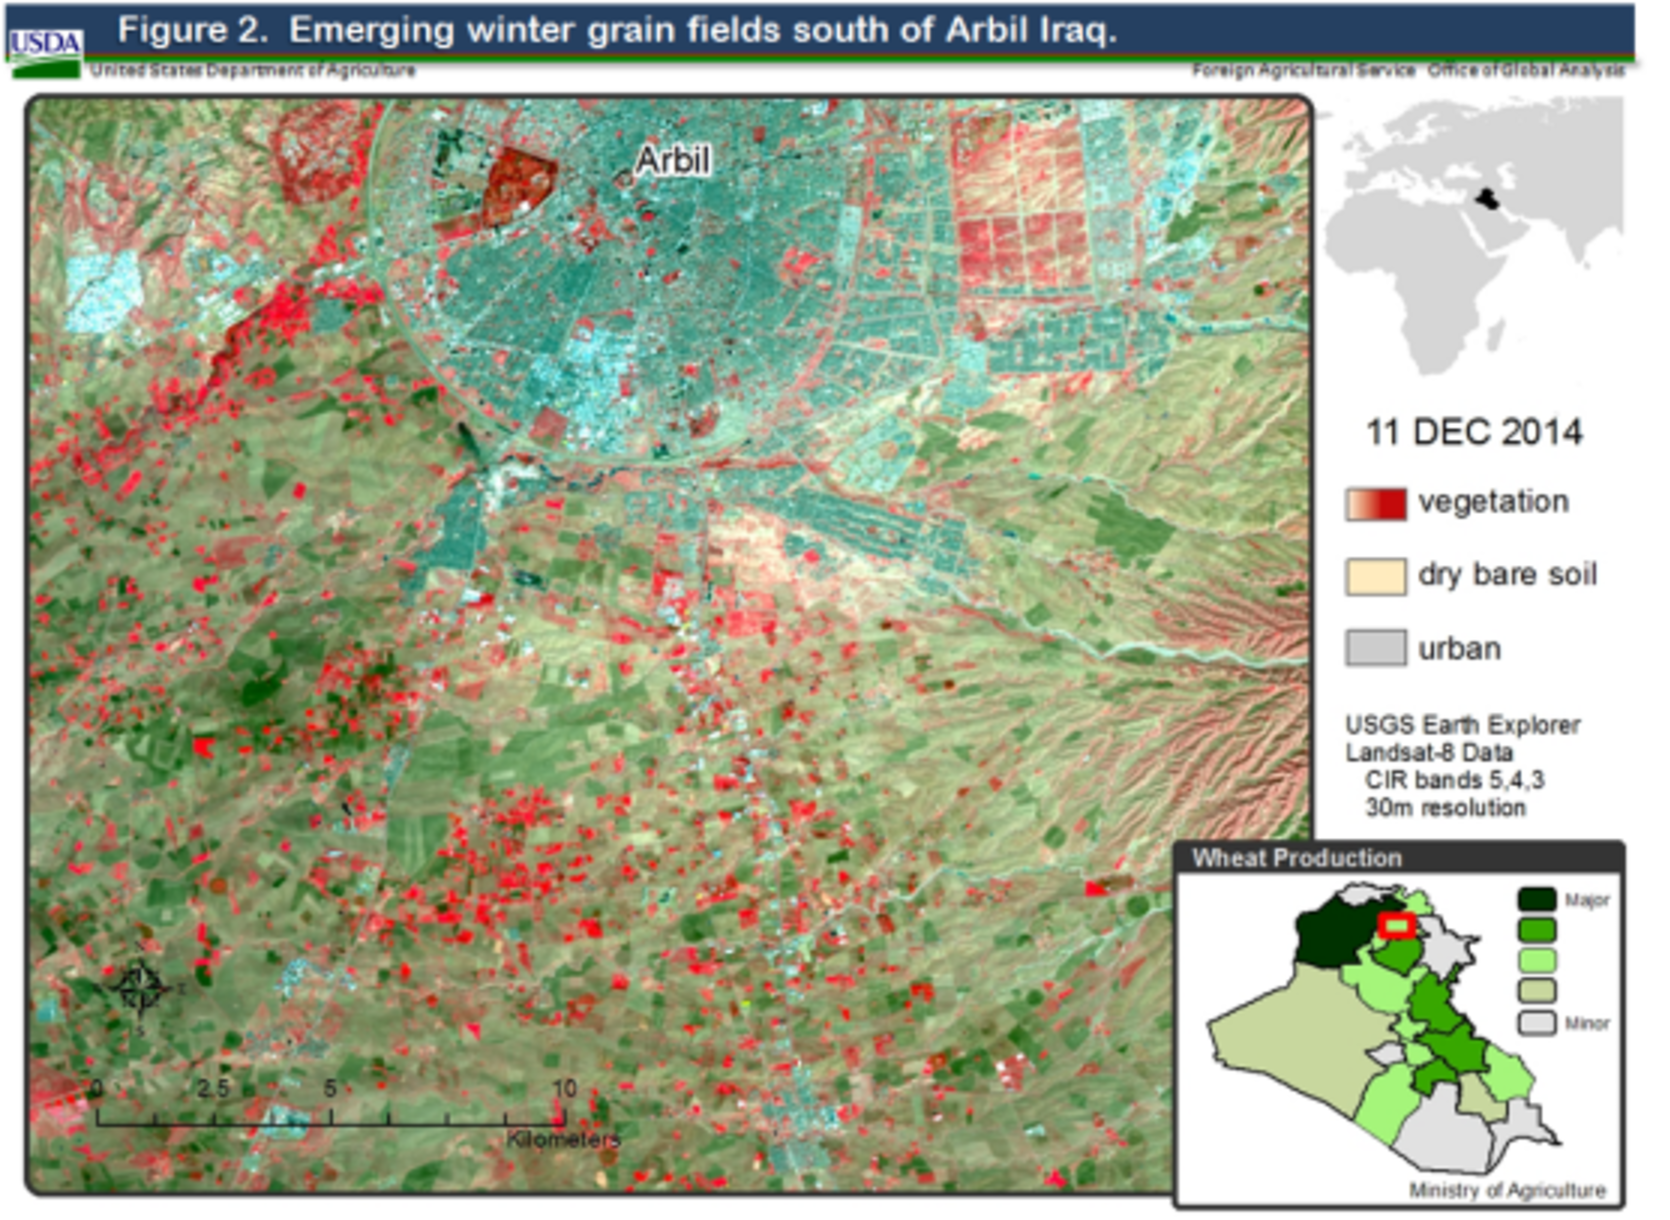 Satellite imagery from December 2014 indicated fields of winter grain starting to emerge near Arbil in northern Iraq